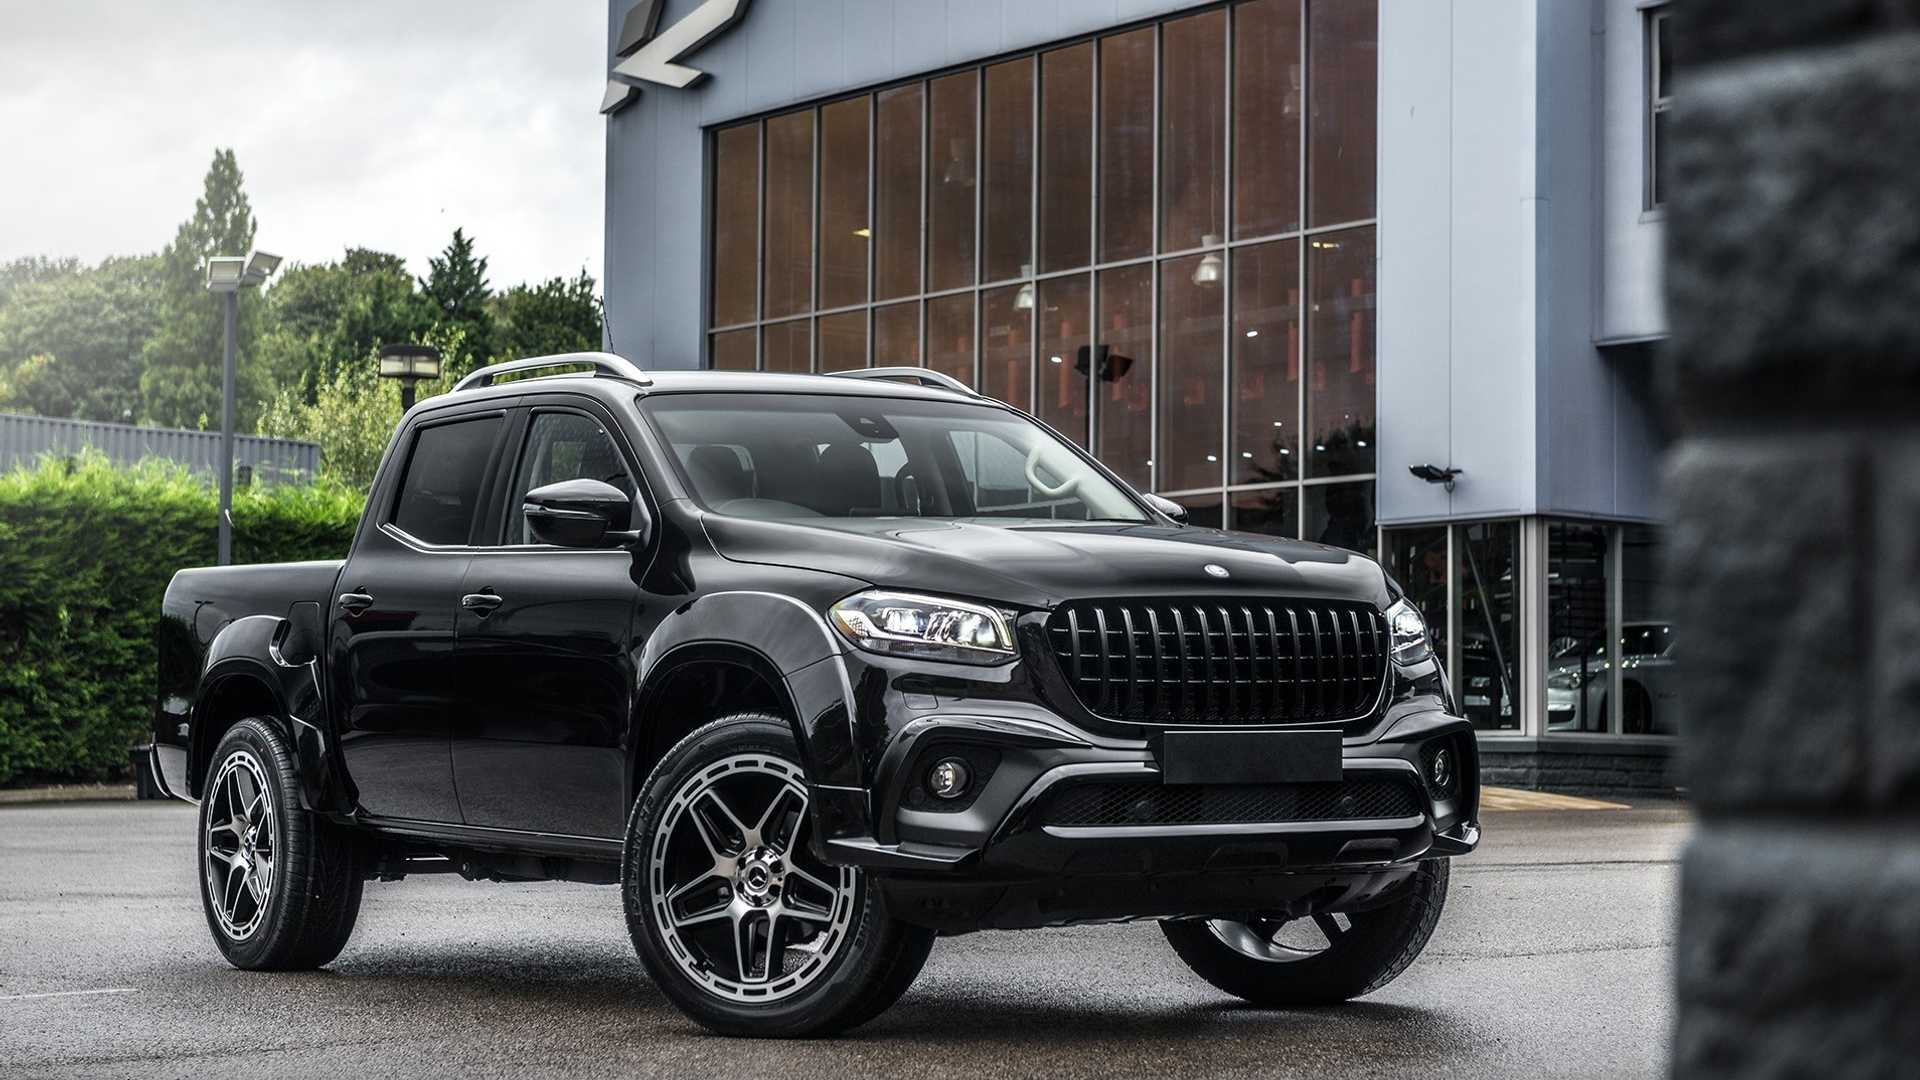 The Project Kahn X-Class Is One Classy Truck